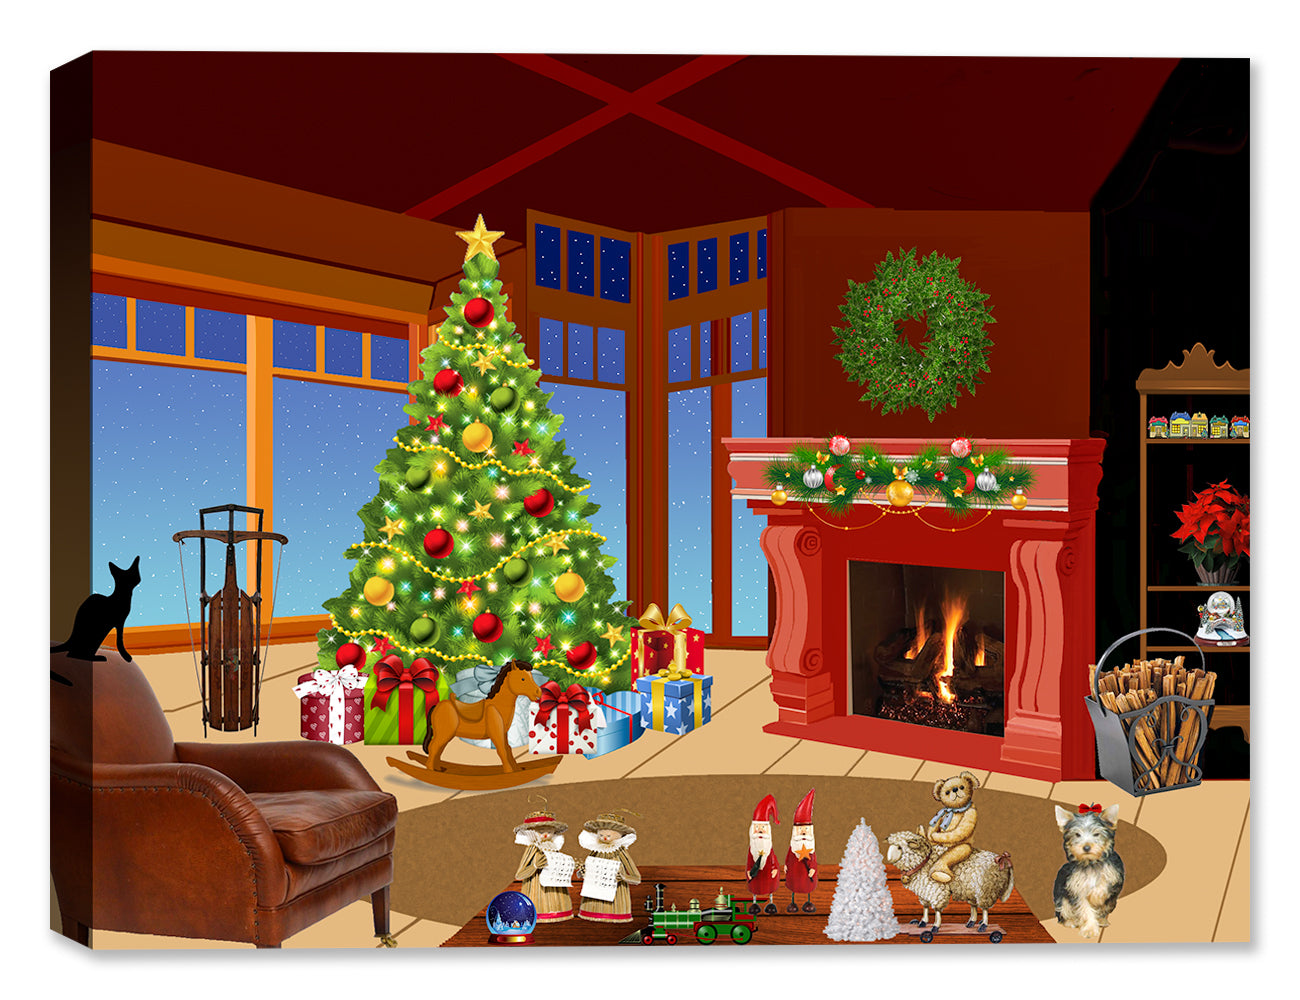 Twas the Night Before Christmas - Holiday Art